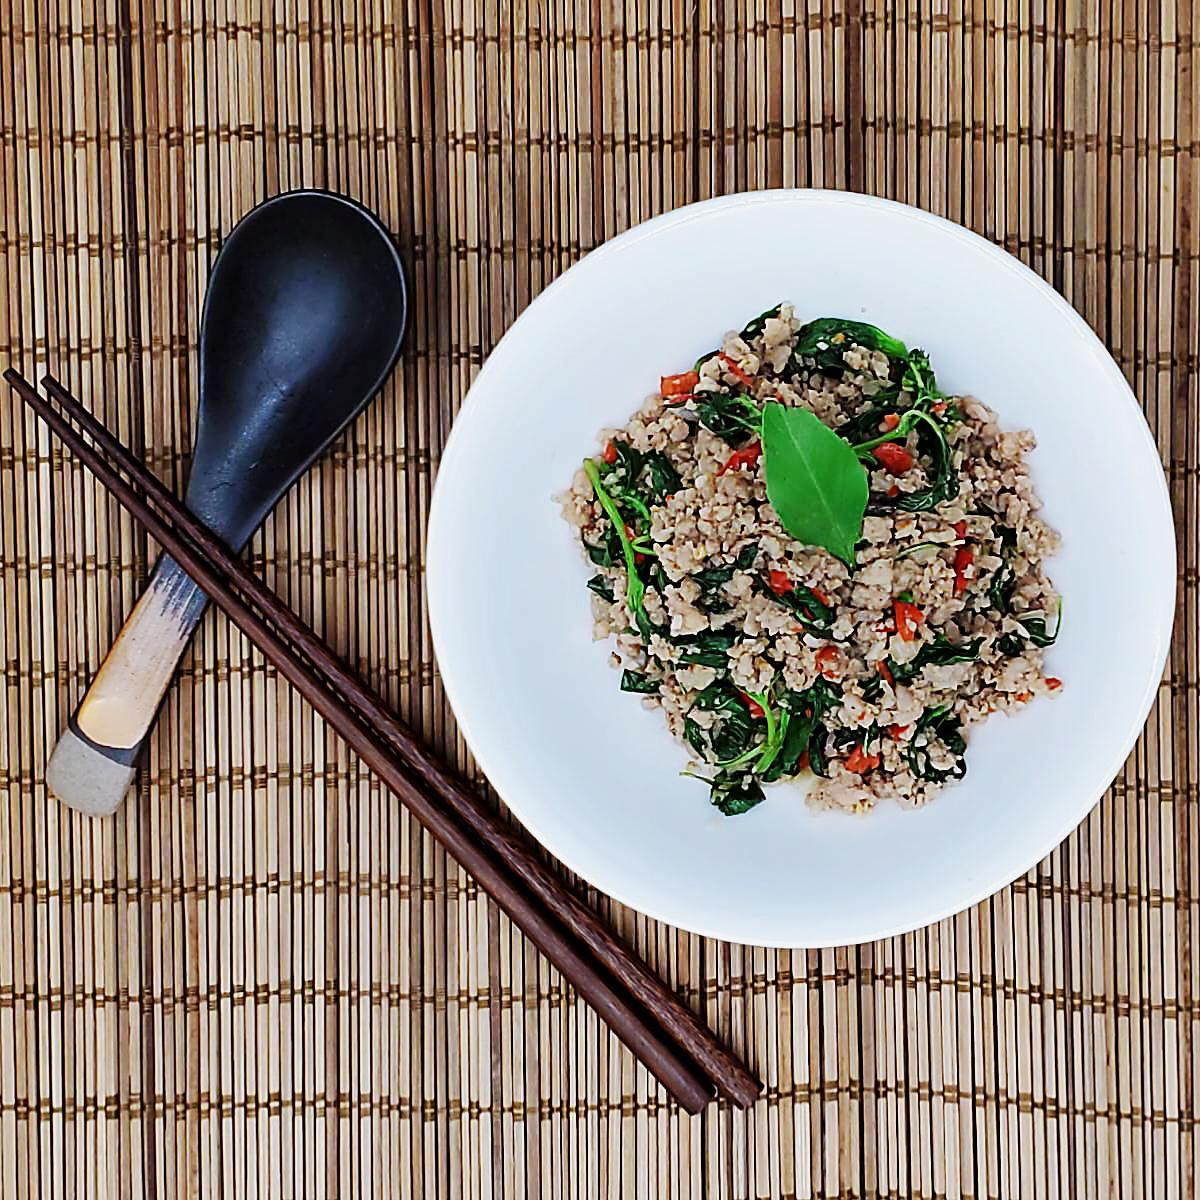 [Phat Kaphrao] Stir-fly Minced Pork with Chili and Sweet Basil (New Product)